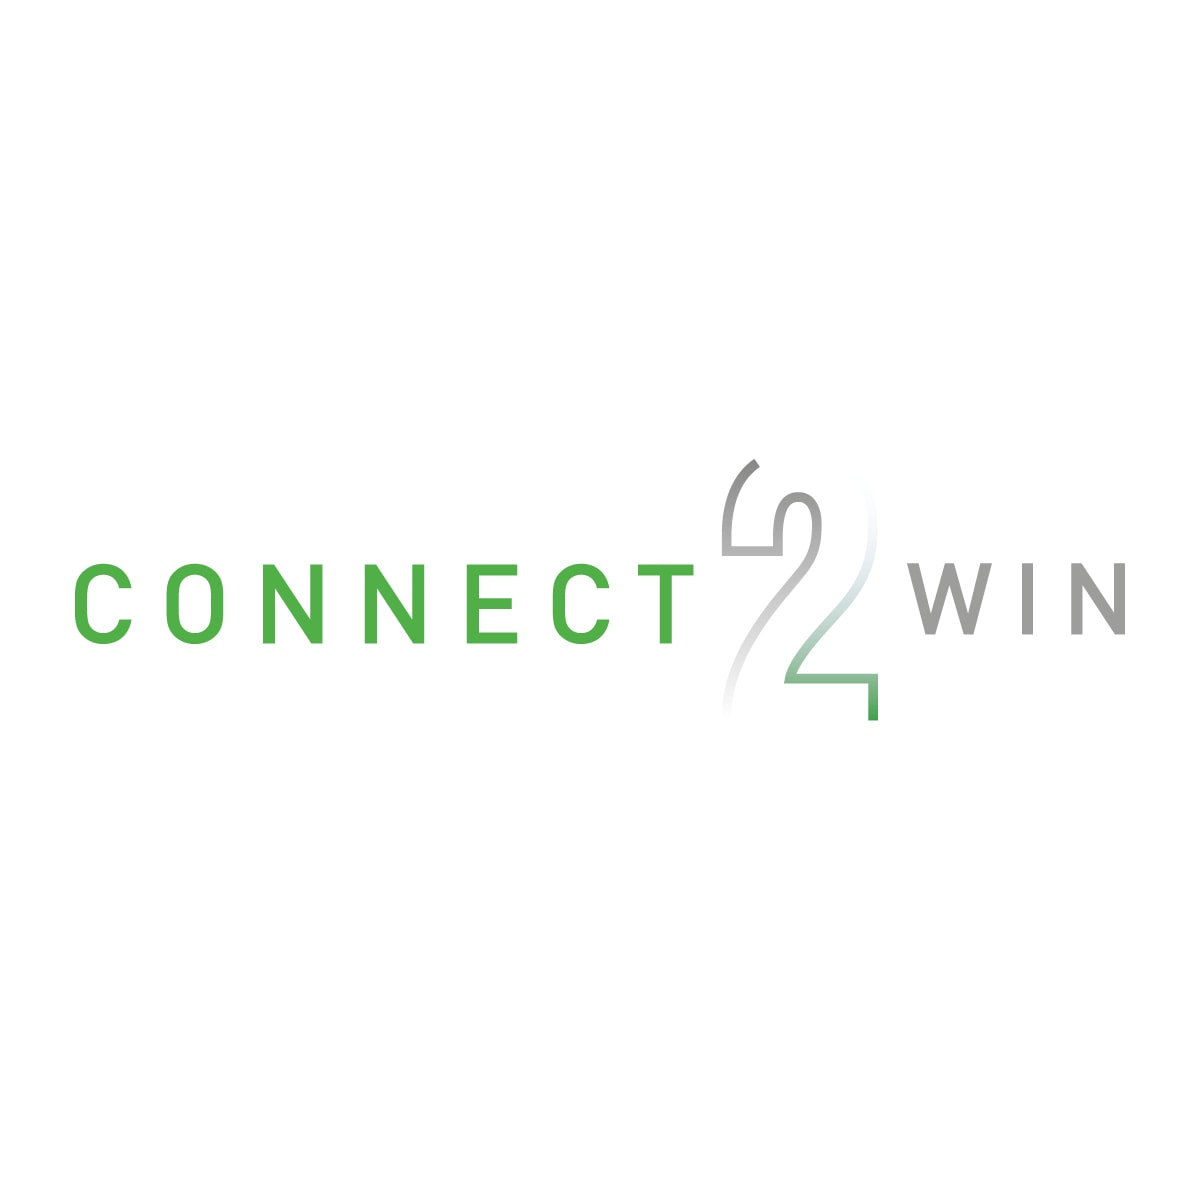 Connect 2 Win